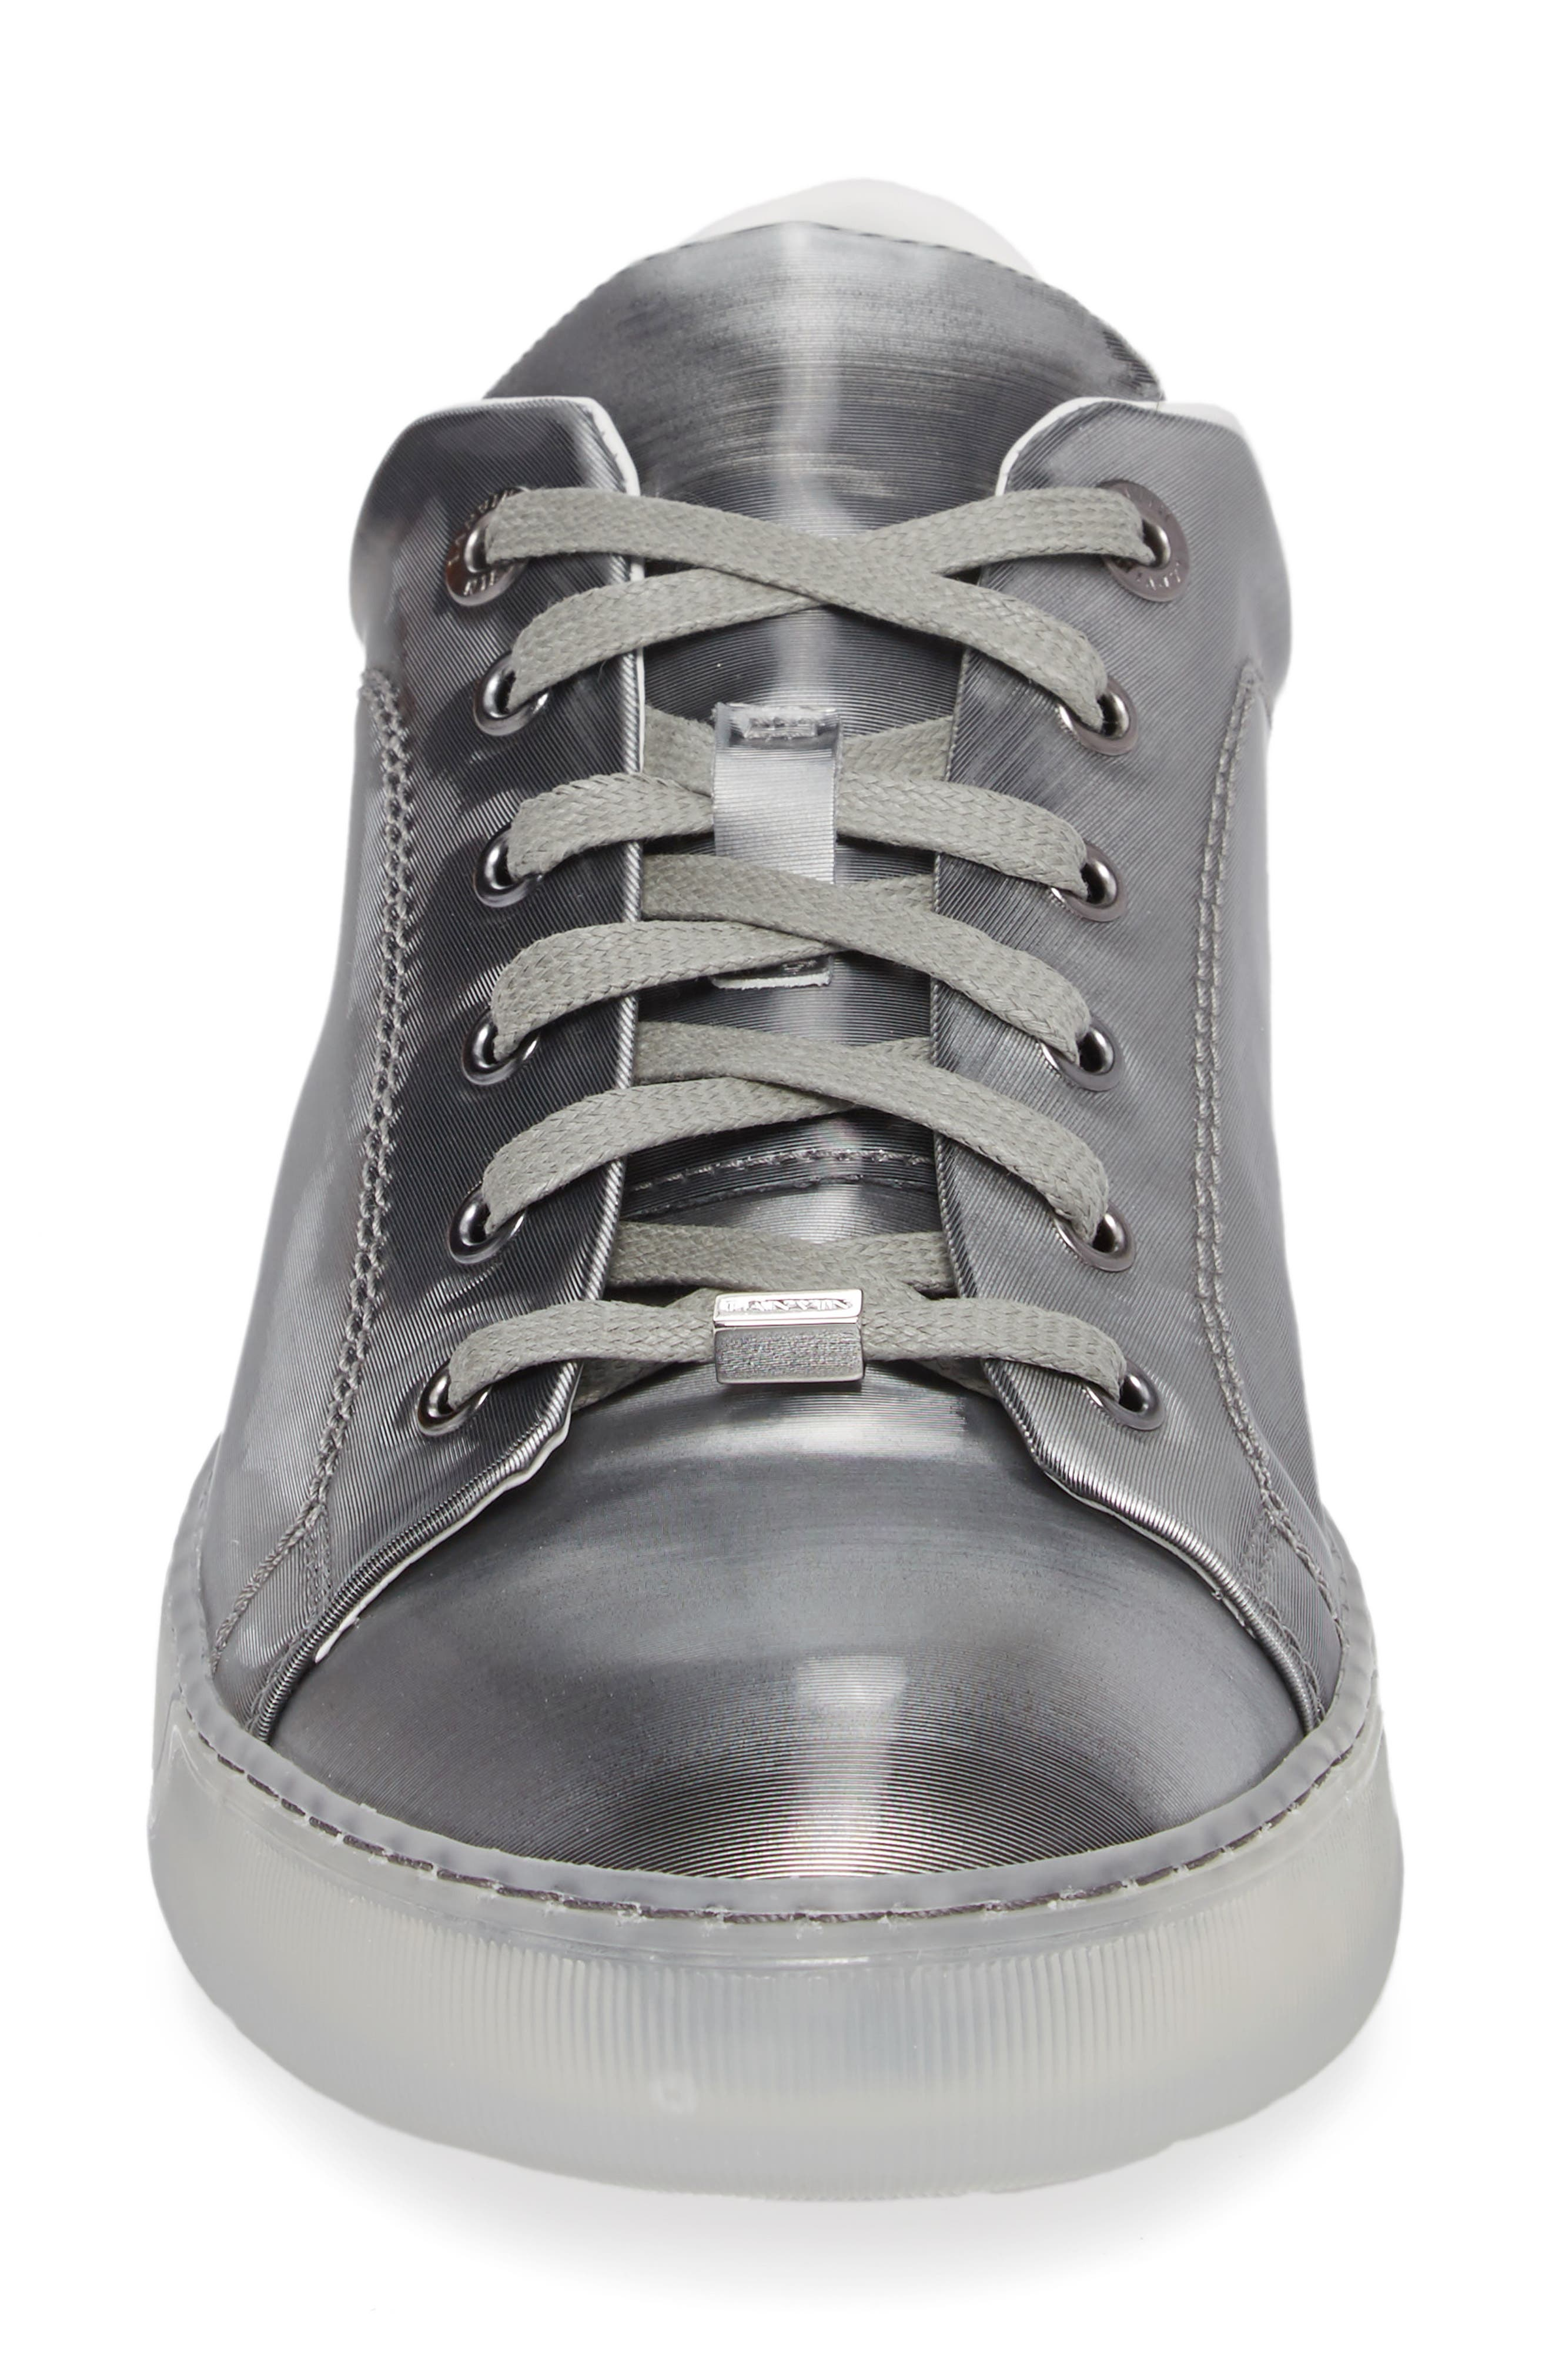 Reflective Lo Sneaker,                             Alternate thumbnail 4, color,                             040